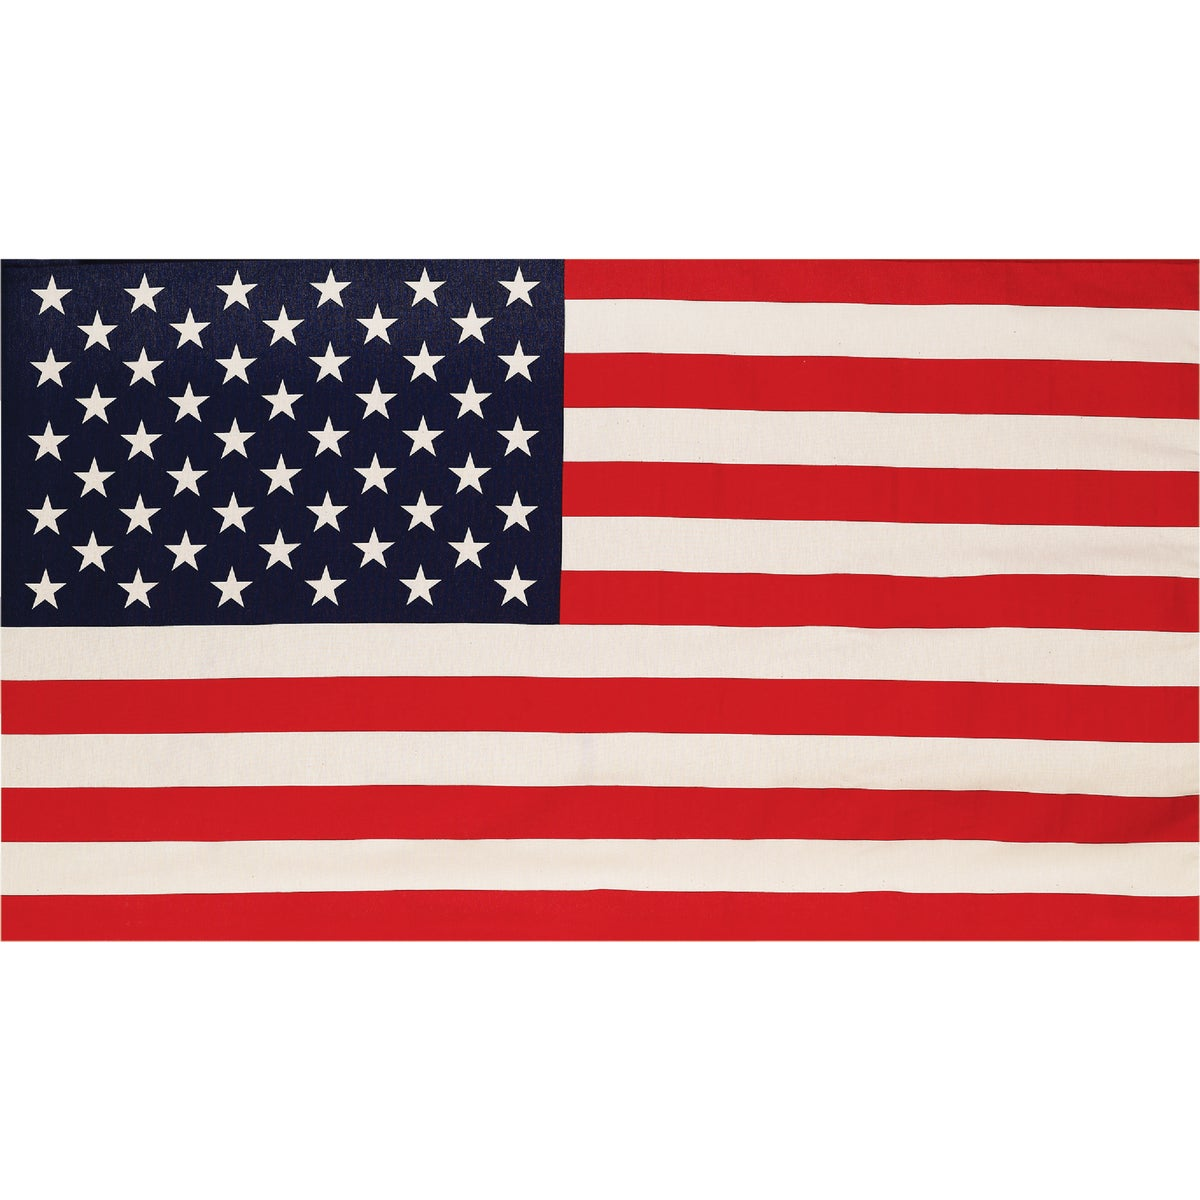 29X50 POLY BANNER FLAG - 99000-1 by Valley Forge Flag